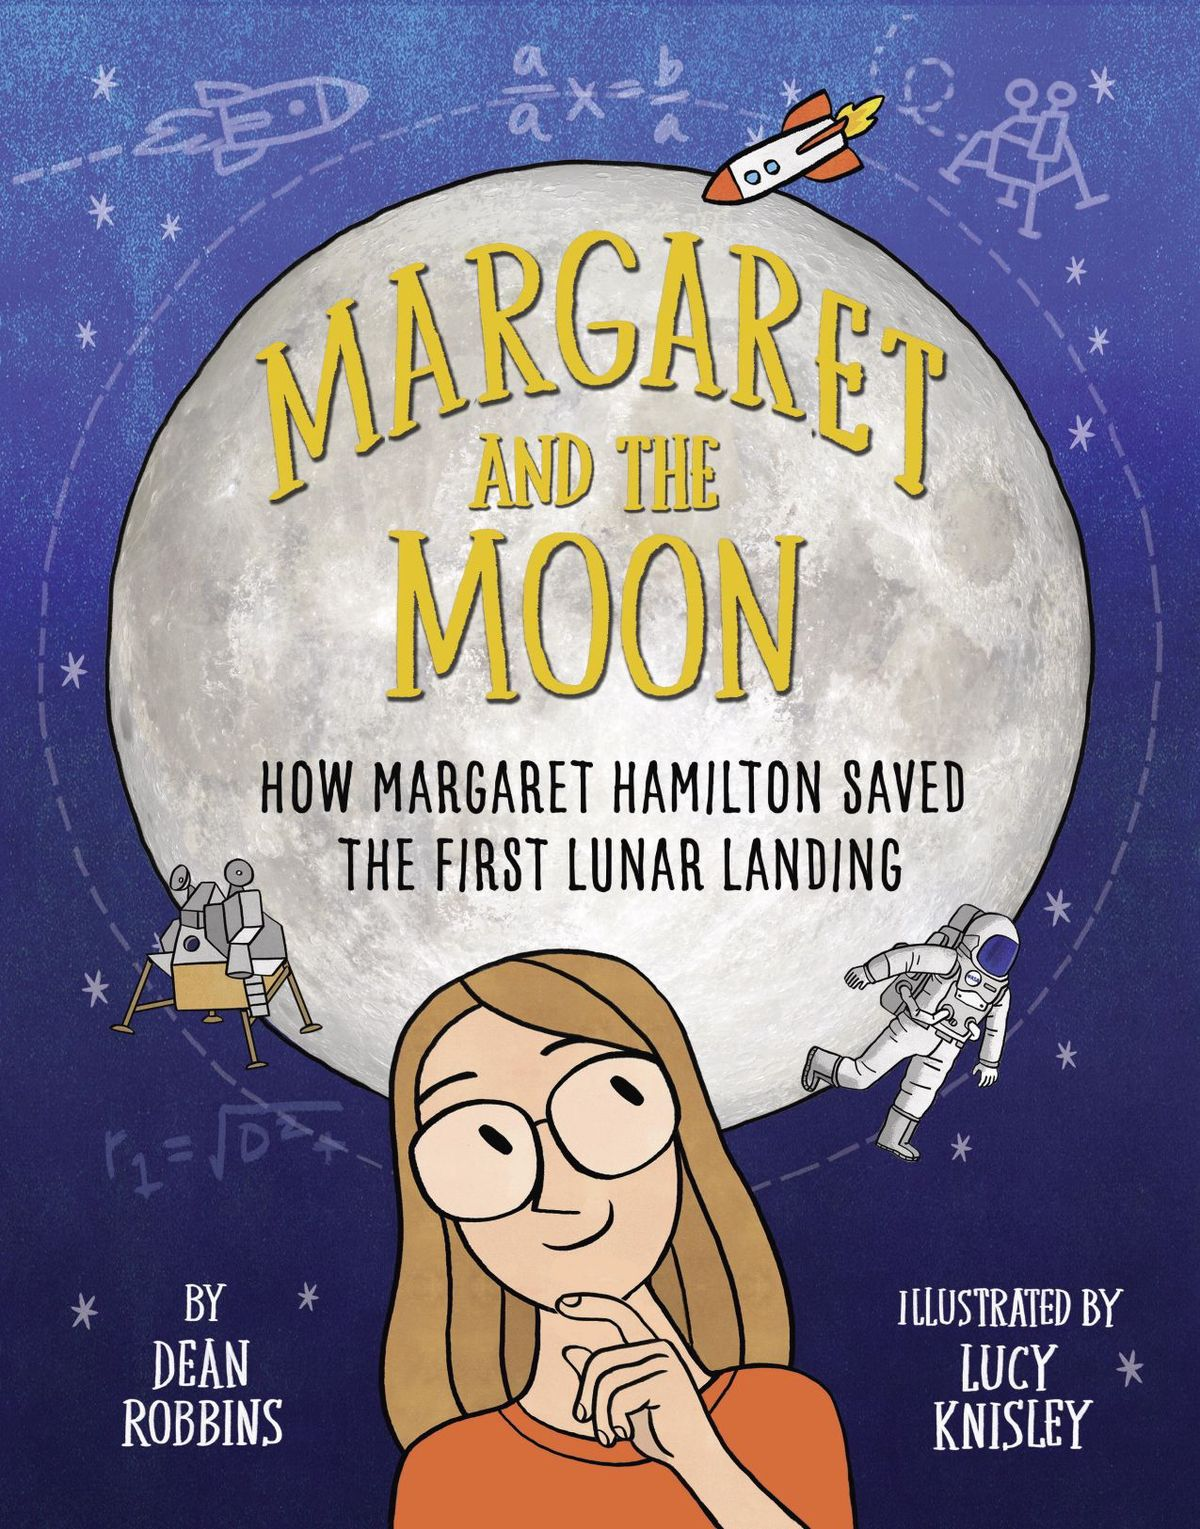 Margaret and the Moon, by Dean Robbins